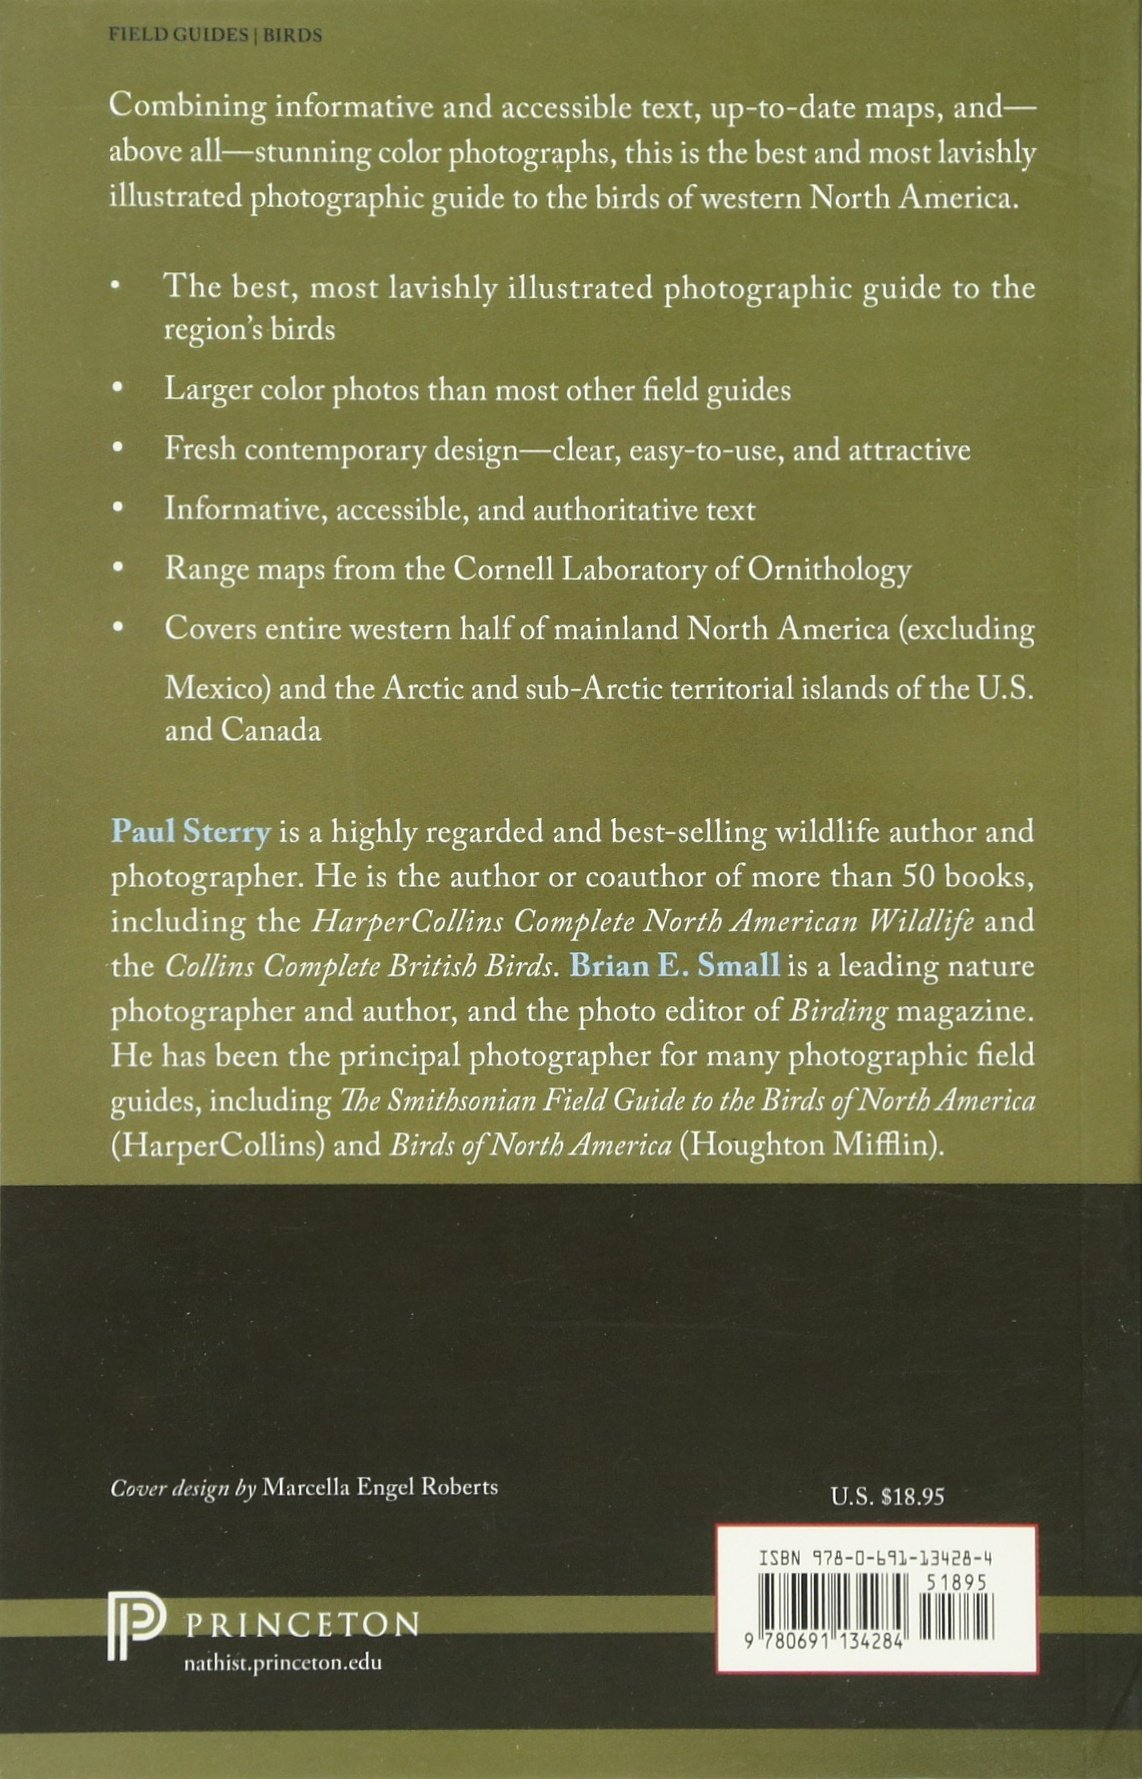 Birds Of Western North America A Photographic Guide Princeton Field Guides Paul Sterry Brian Small 9780691134284 Amazon Books